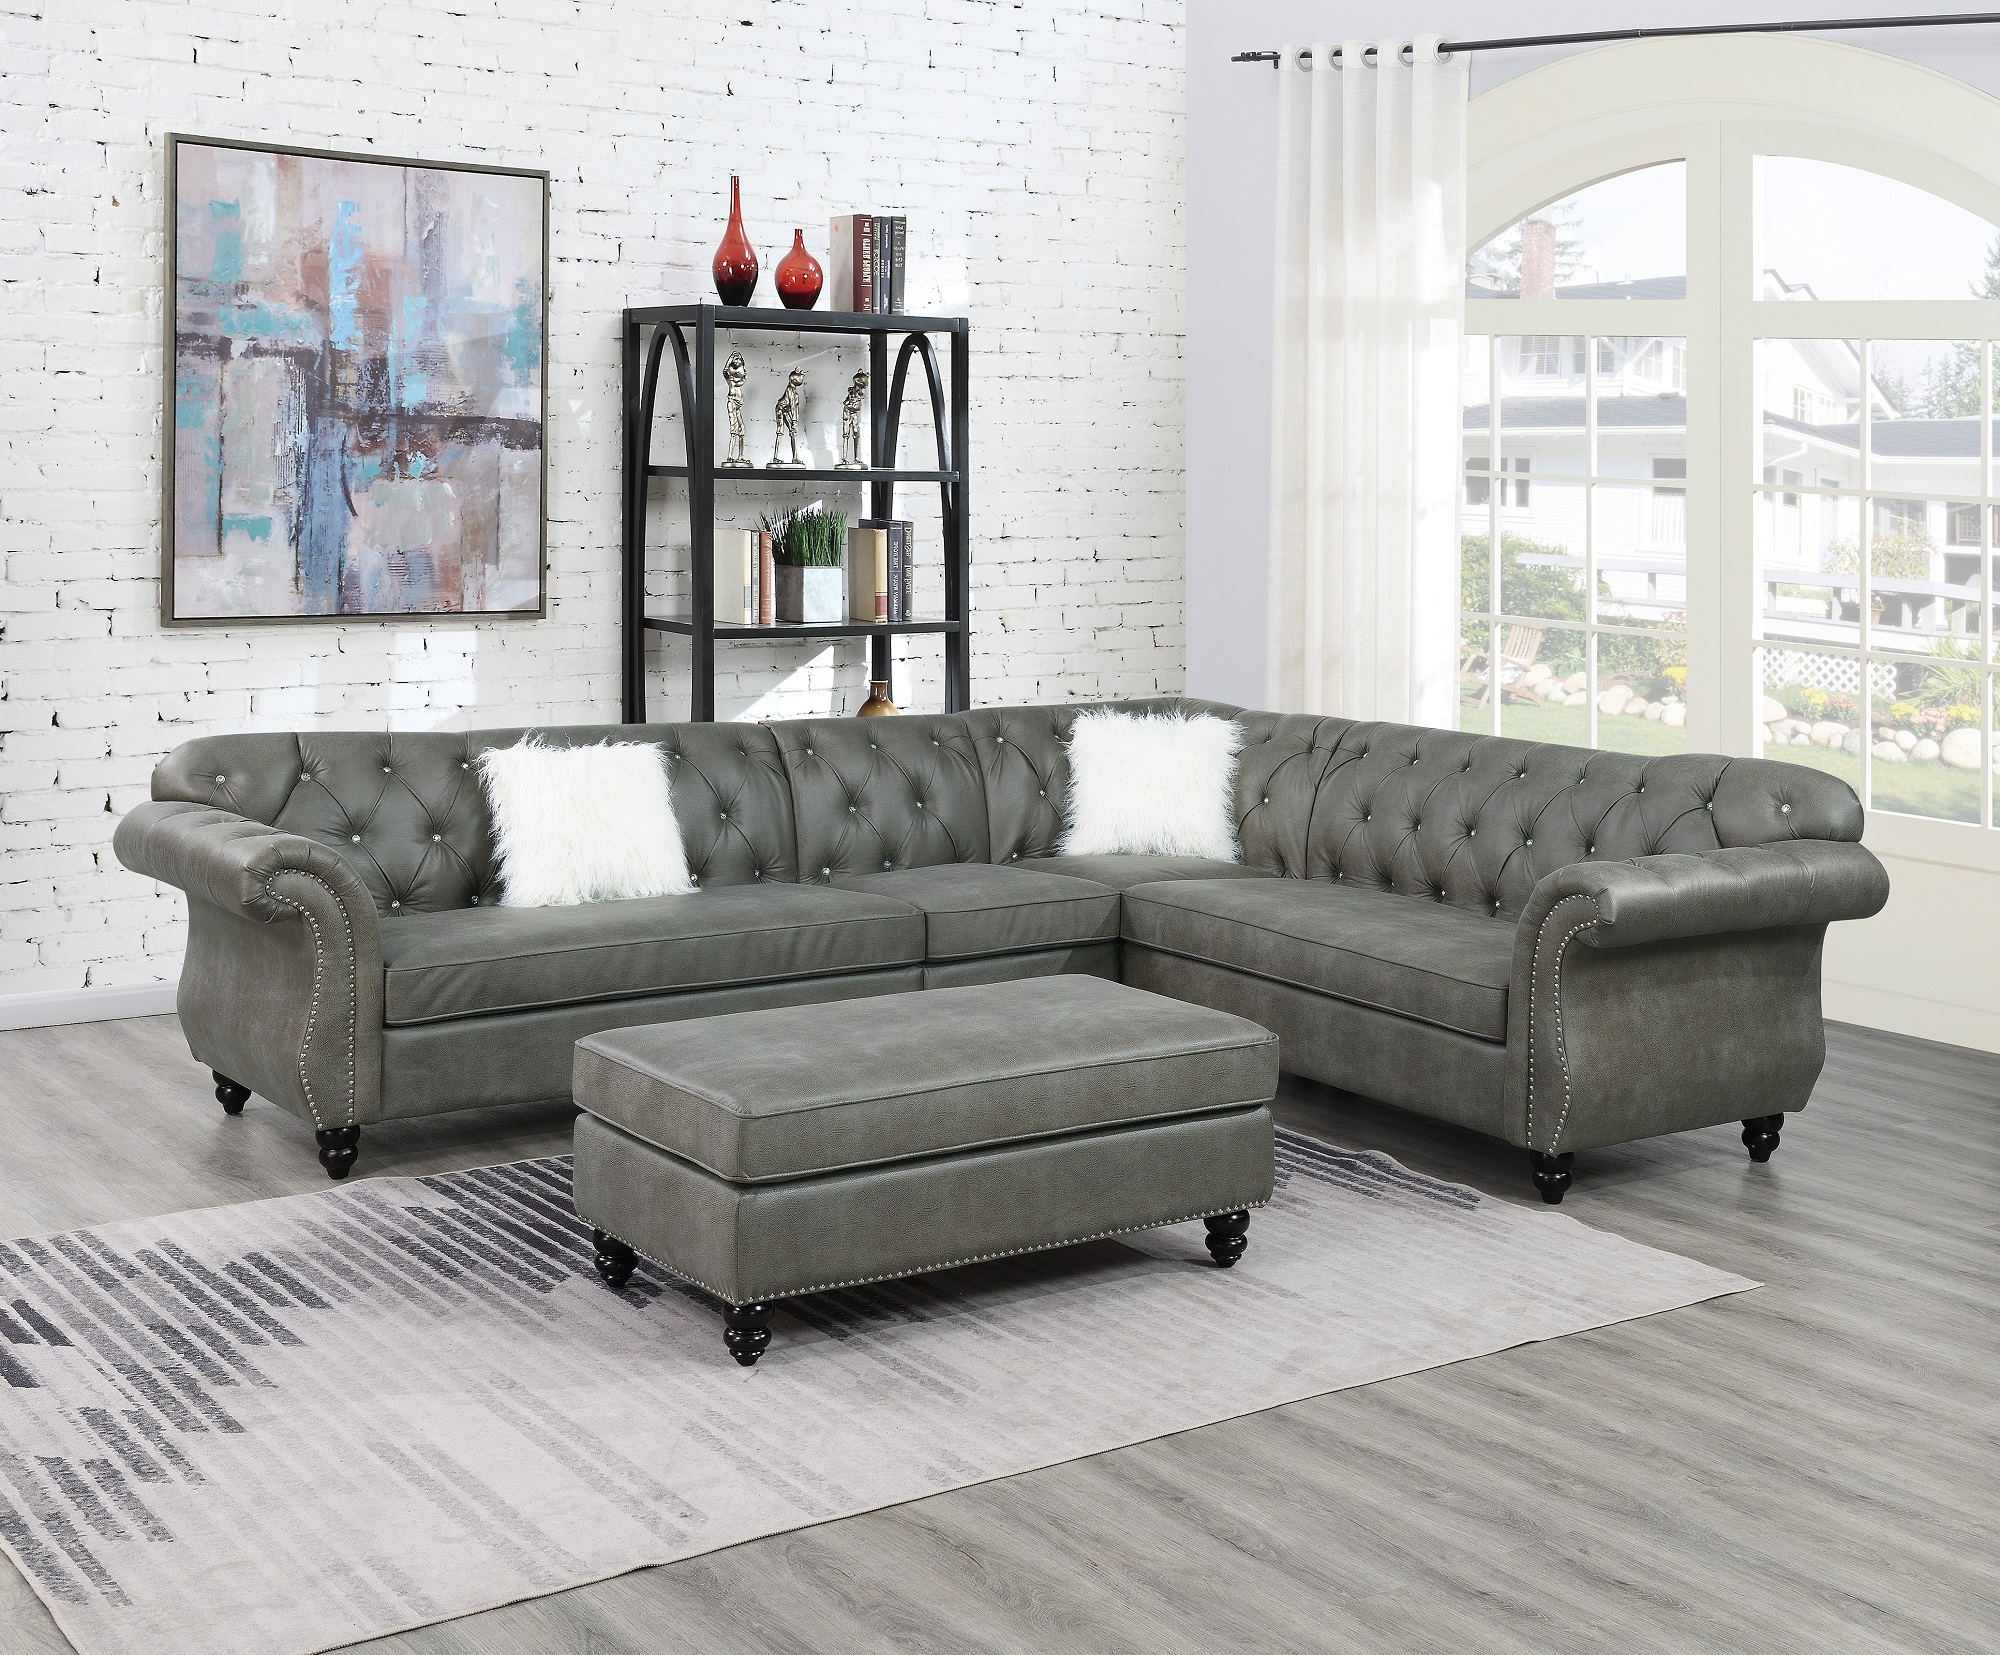 2019 Contemporary Modern Living Room Sectional Sofa Set Slate In 4pc Beckett Contemporary Sectional Sofas And Ottoman Sets (View 2 of 20)